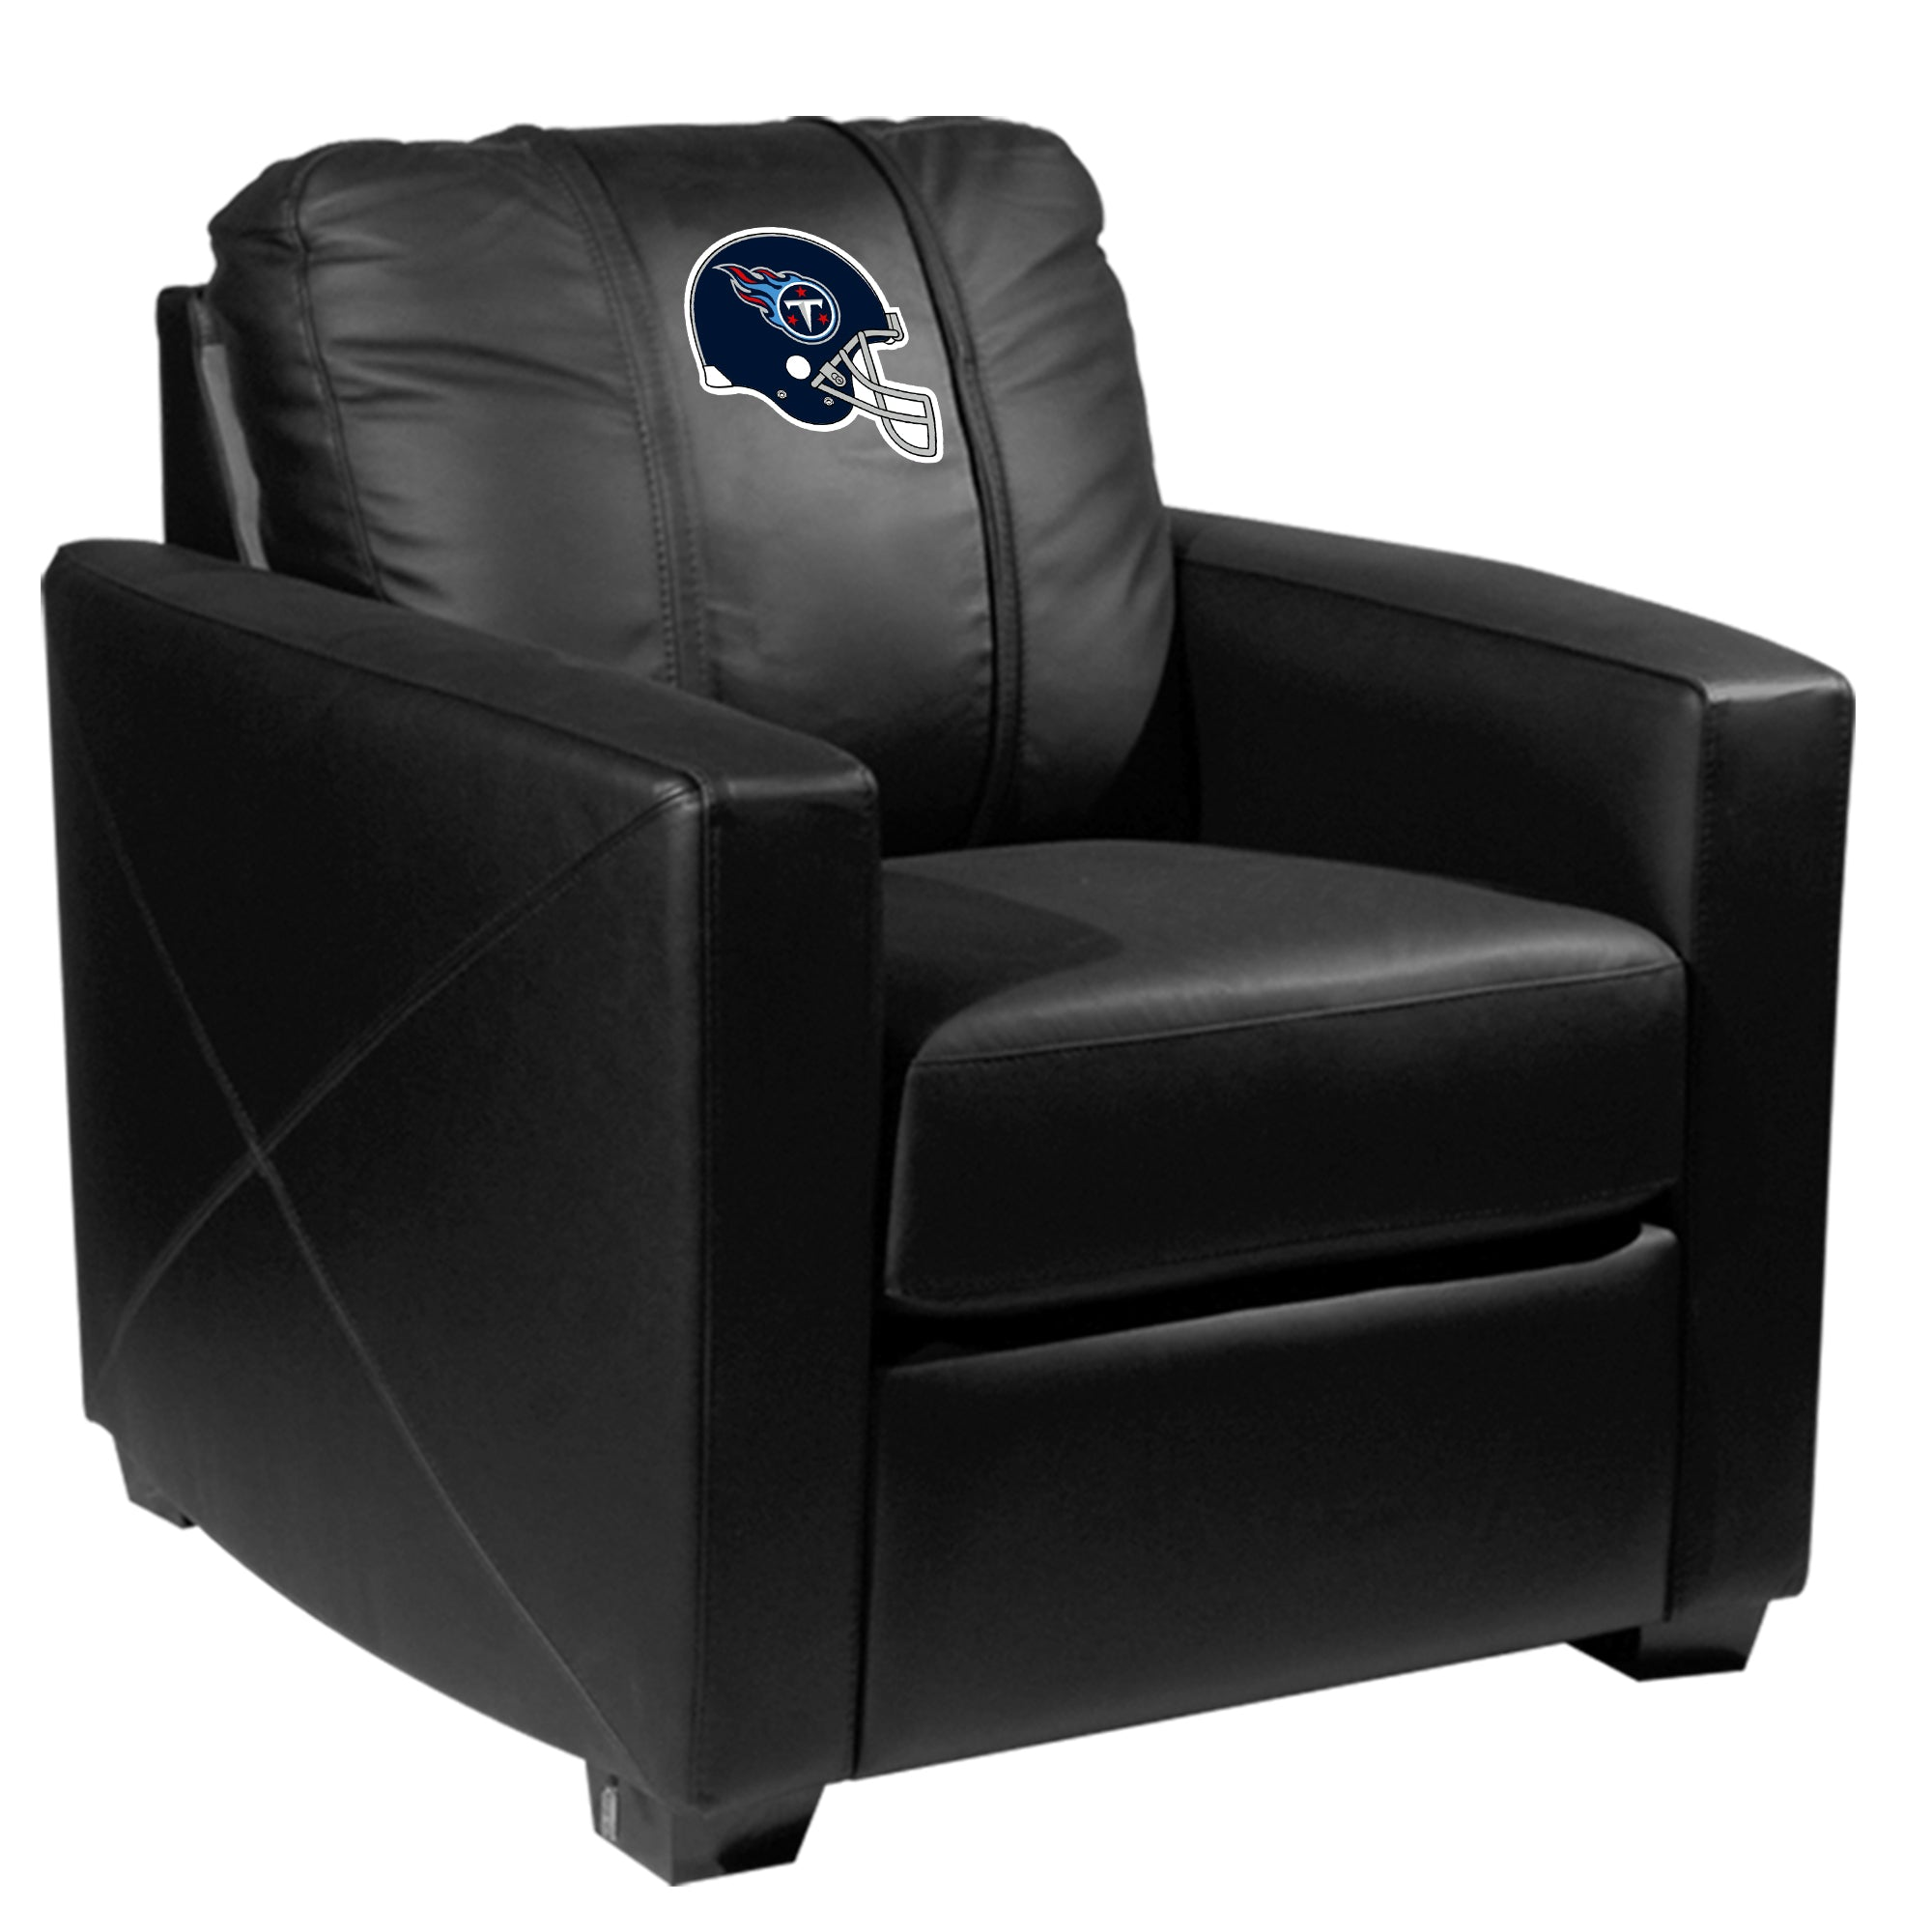 Silver Club Chair with  Tennessee Titans Helmet Logo